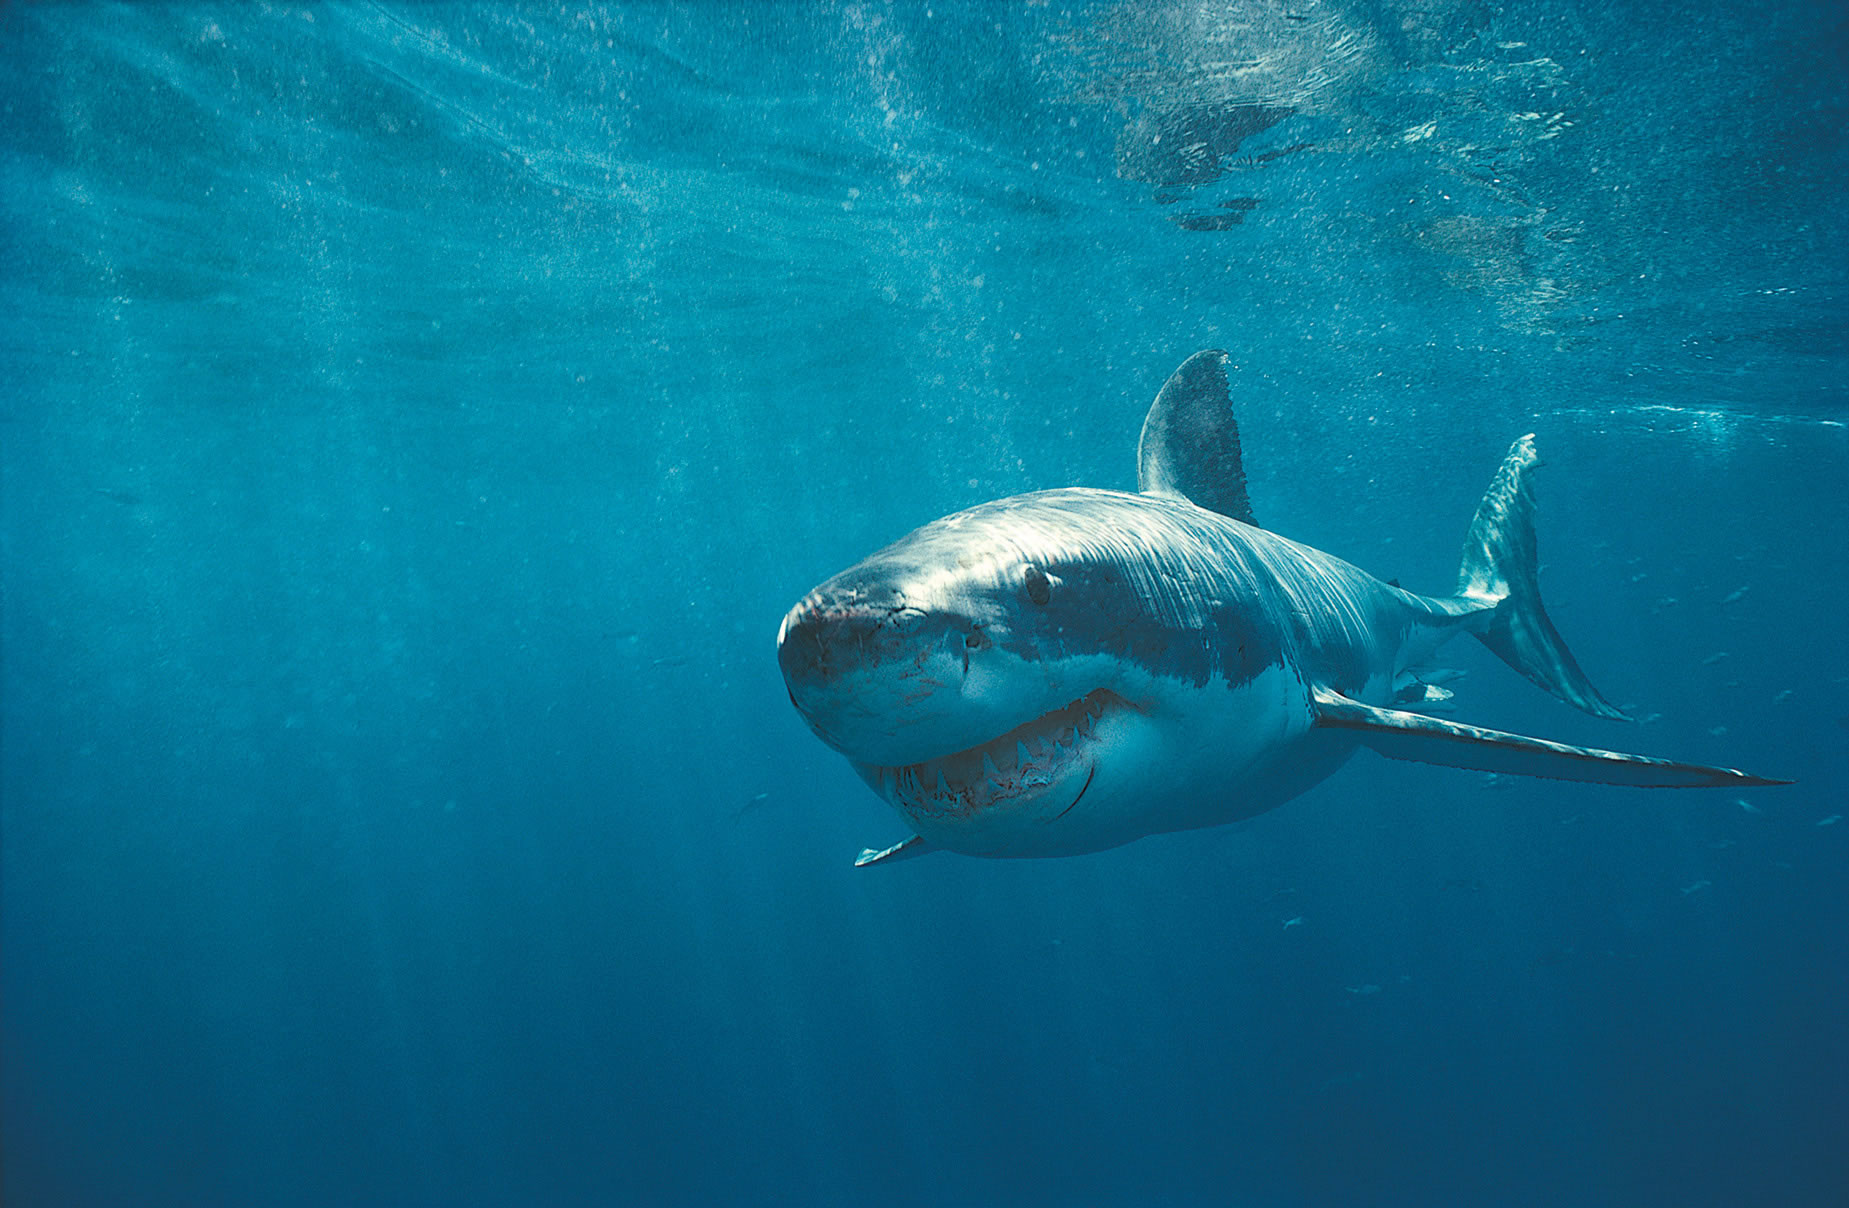 Get up close and personal with a Great White Shark